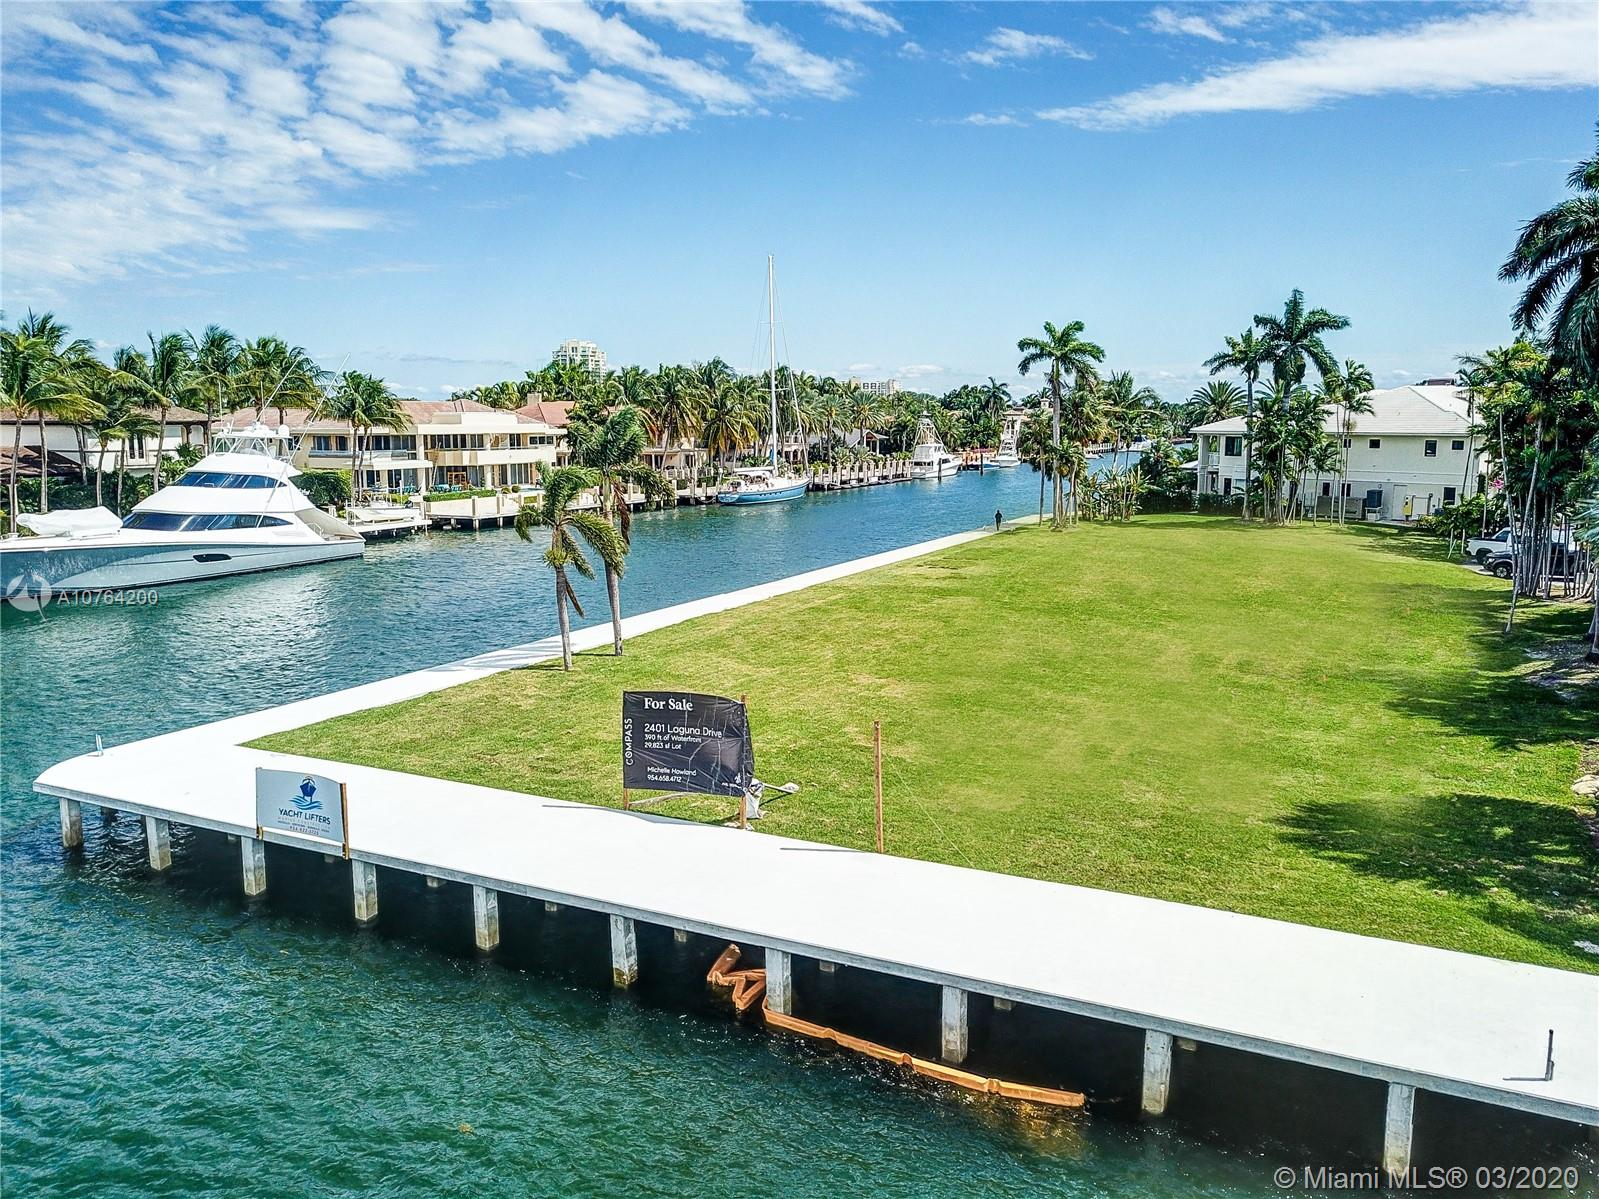 Spectacular Point lot where the intracoastal meets the New River offering panoramic open vistas.  Boasting 390+ of water frontage, accommodates large and multi yacht dockage truly just minutes from the ocean.  New Seawall and Extended Dock to be completed by NOV 30th, 2019.  Unobstructed views extend far and wide toward the long westward expanse up the New River to downtown Fort Lauderdale.  Residents of Harbor Beach also have access to the private beach club.  Take advantage of this rare point lot opportunity to build your dream home.  New Seawall and Extended Dock to be completed by NOV 30th.